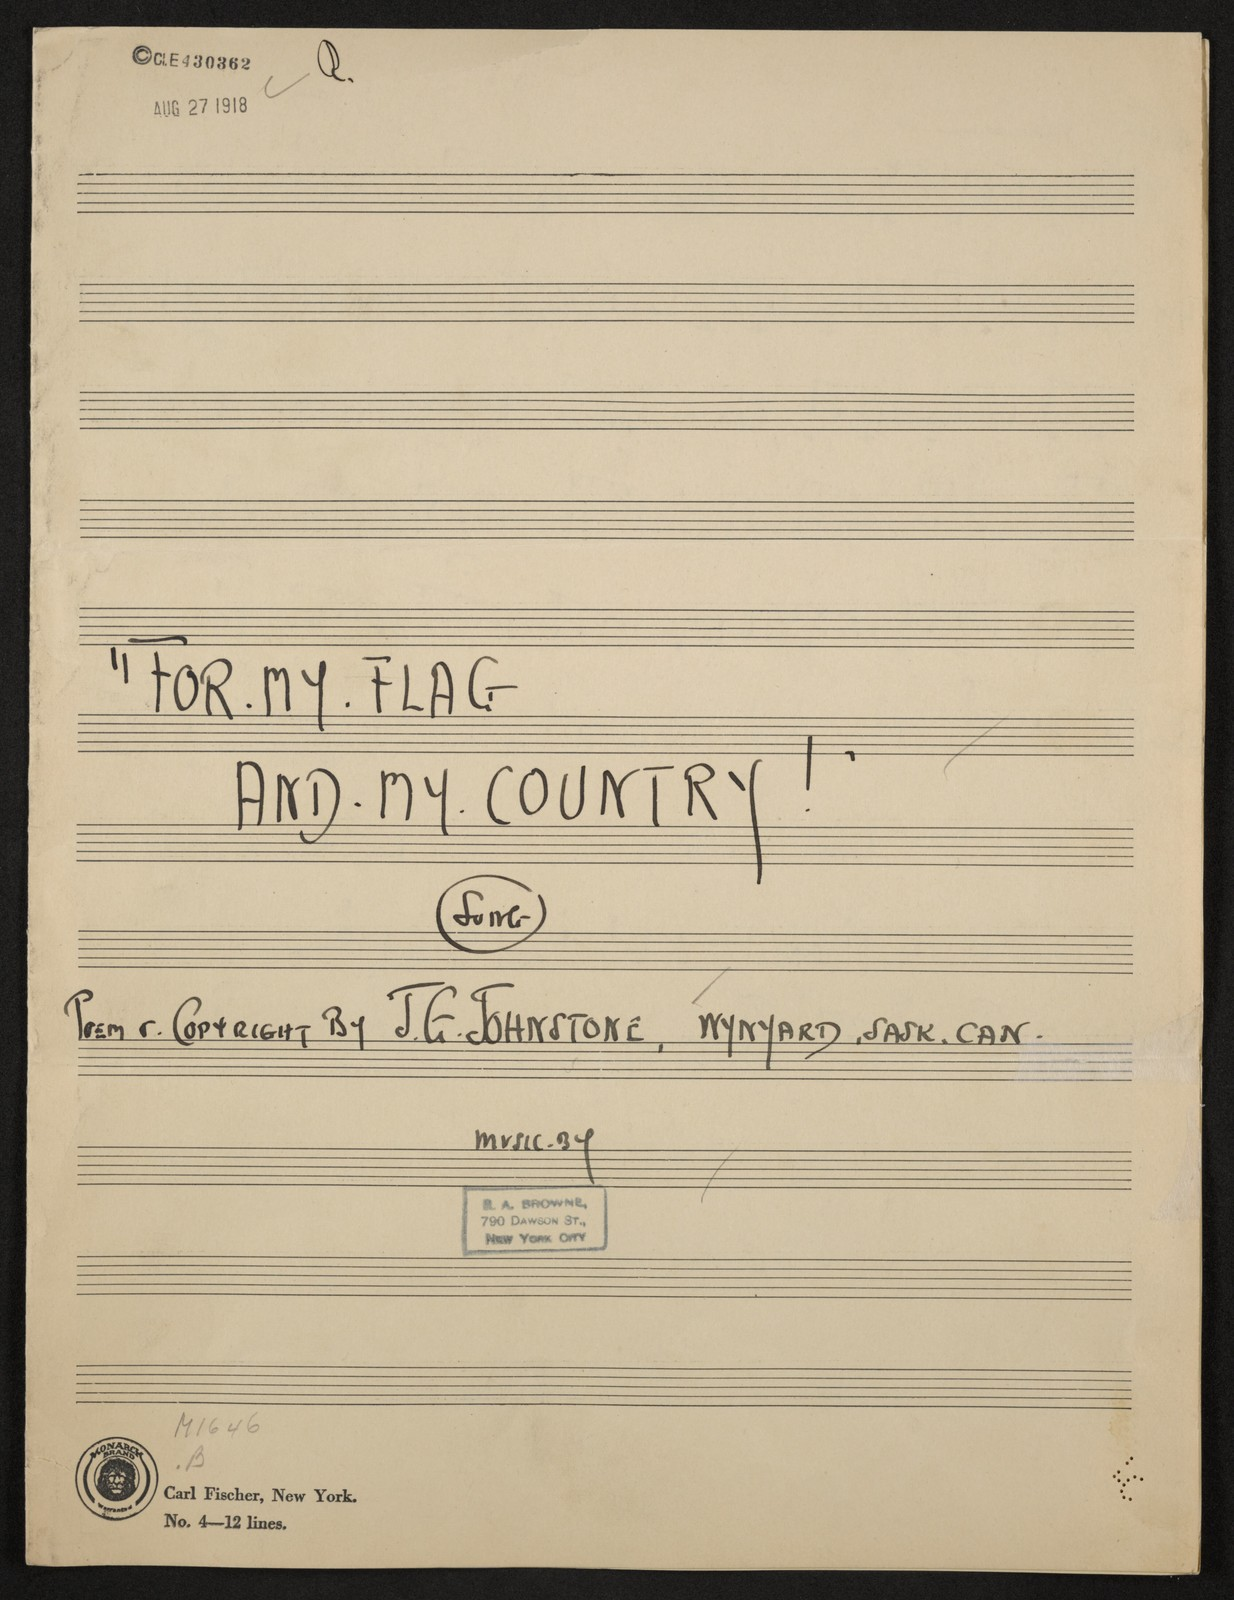 F or my flag and my country! song